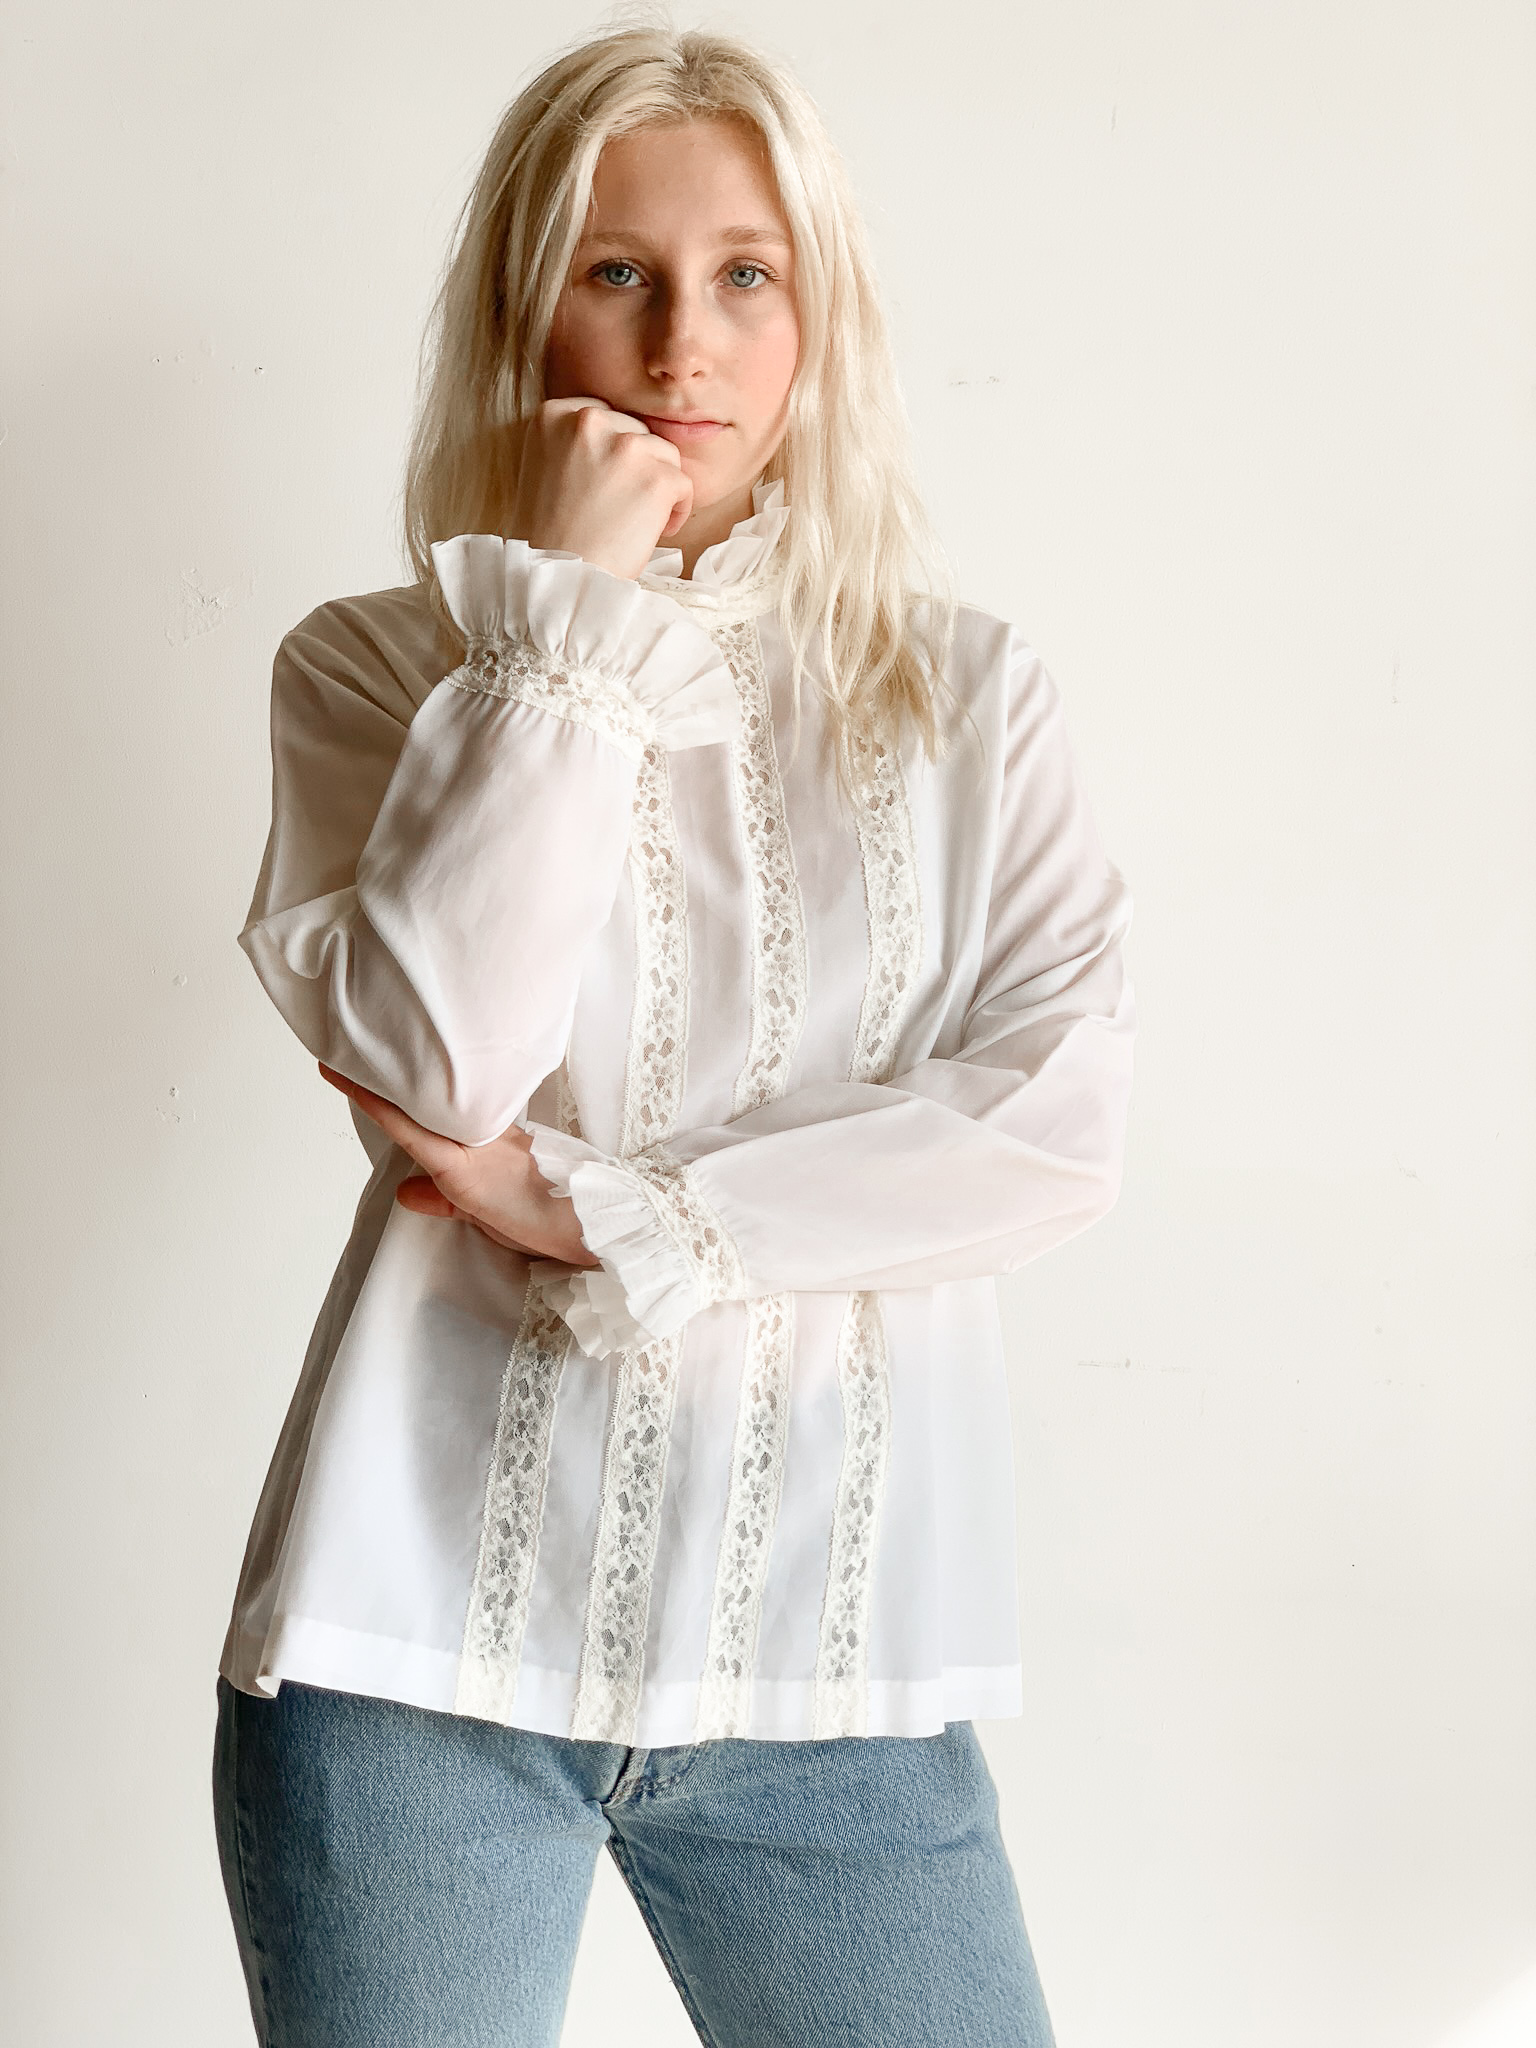 70s Victorian Style Blouse W/ Lace + Pleating Details